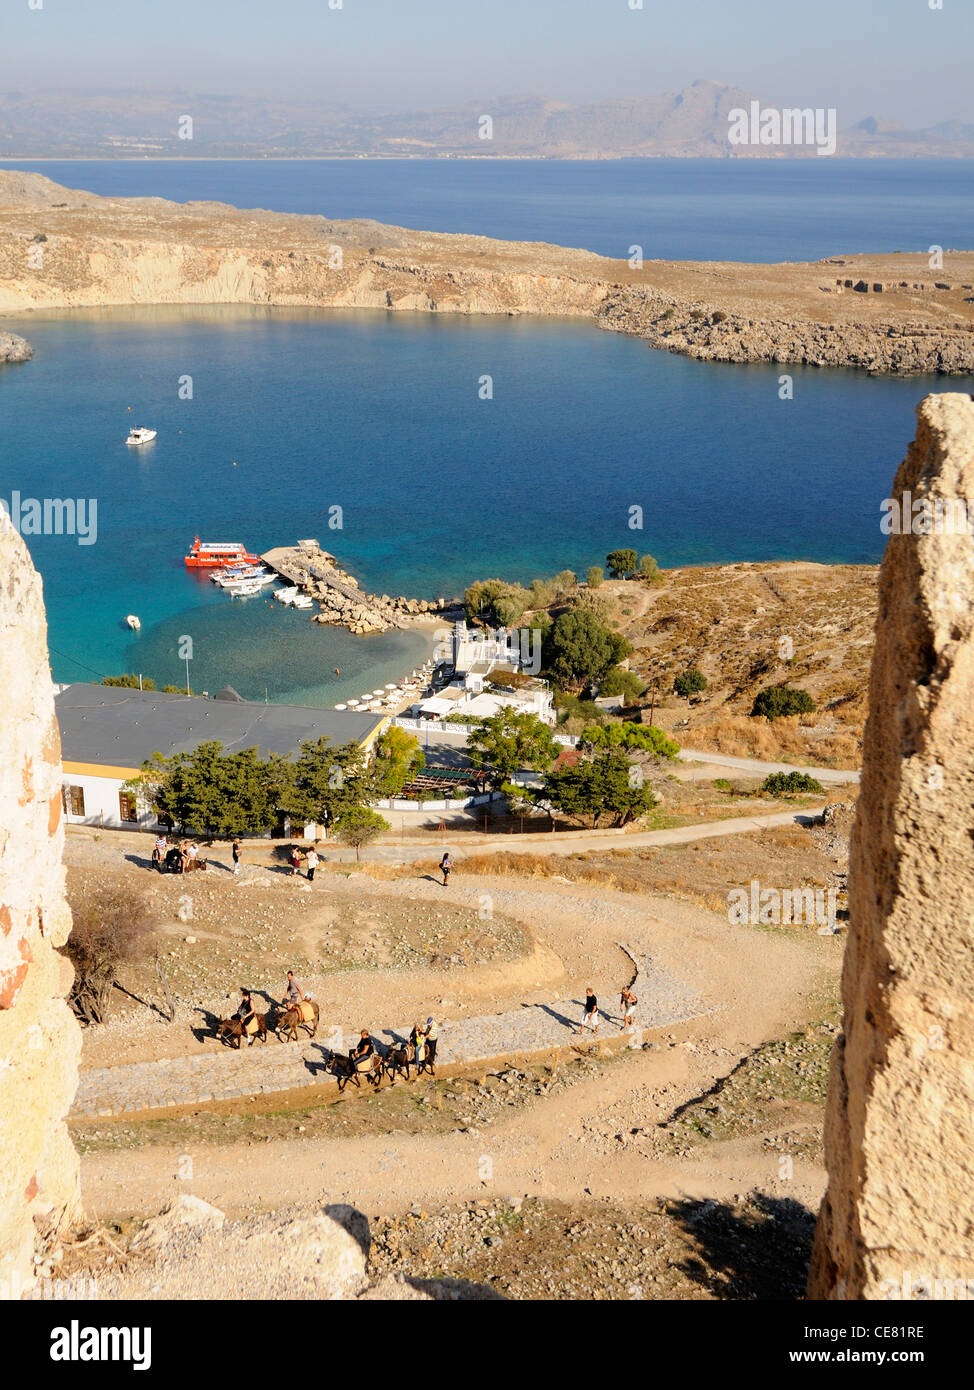 Looking down onto the bay at Lindos from the Acropolis - Stock Image